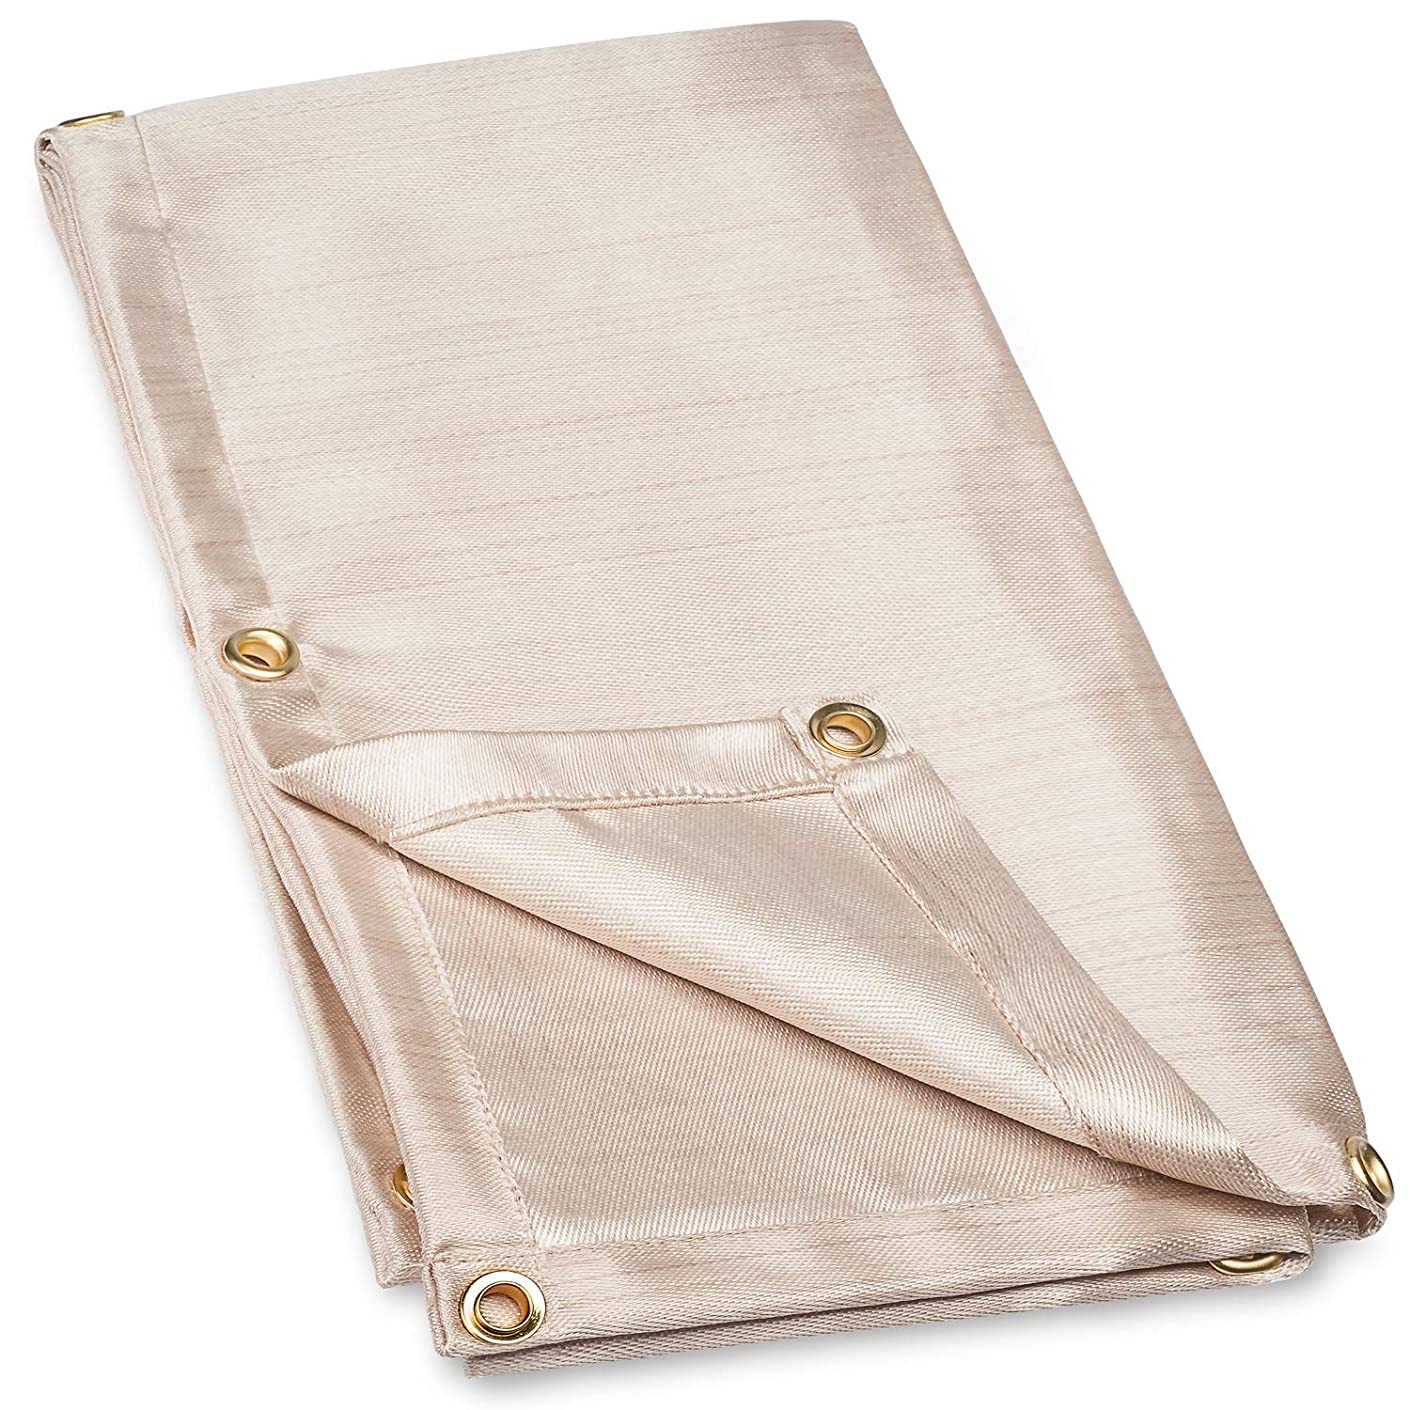 Neiko 10908A Fiberglass Welding Blanket and Cover, 4' x 6' | Brass Grommets For Easy Hanging and Protection